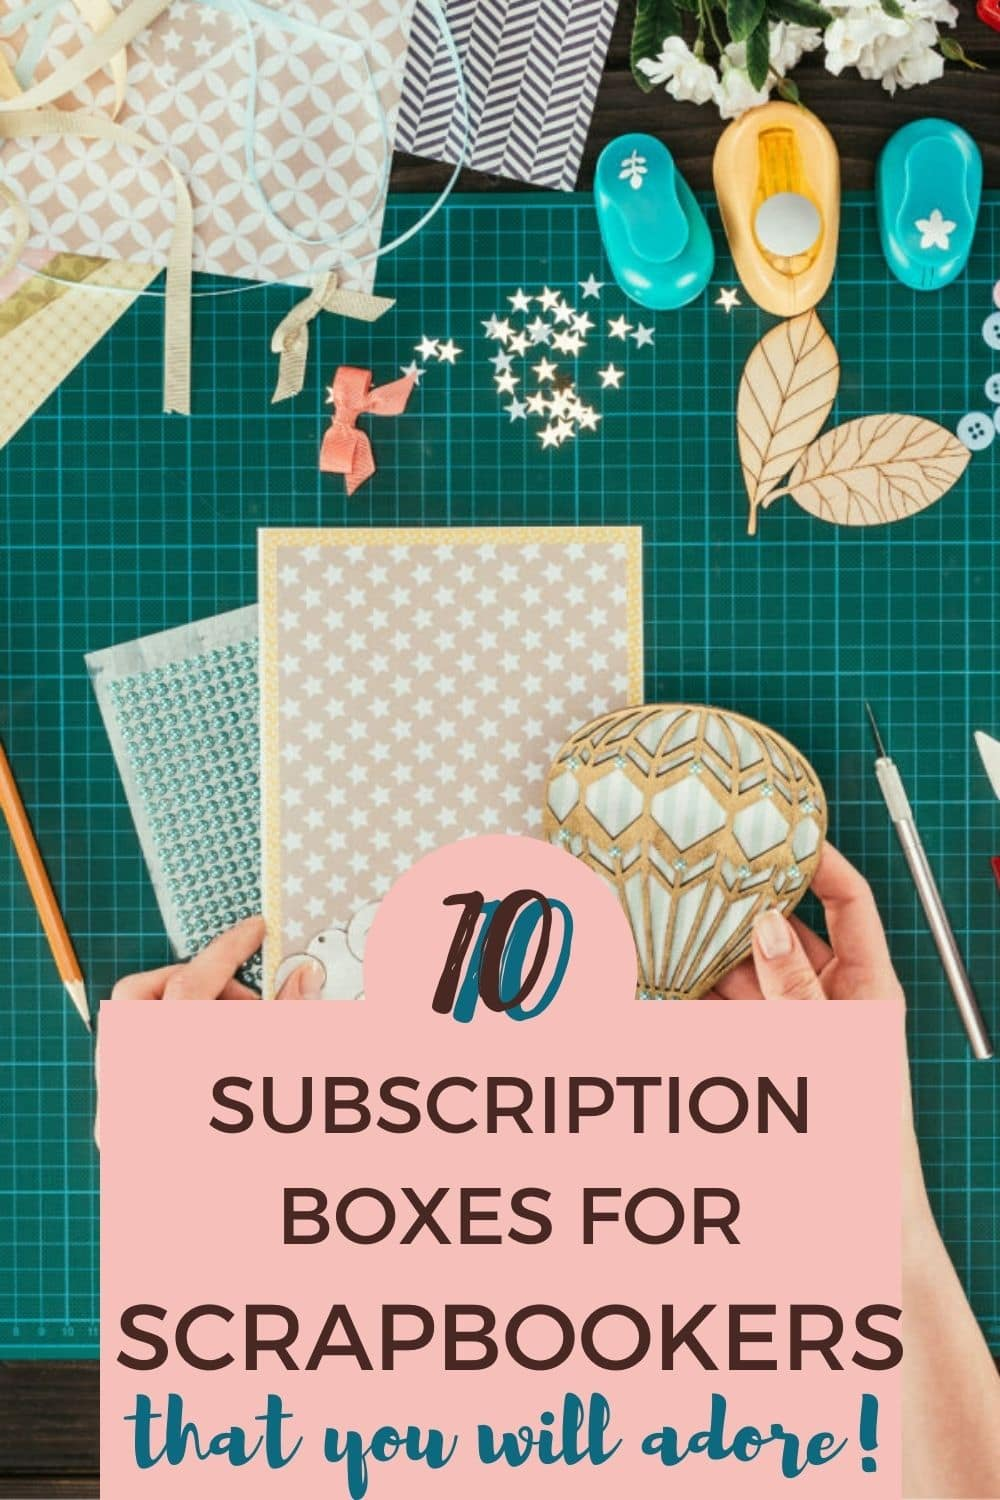 Best Subscription Boxes for Scrapbooking